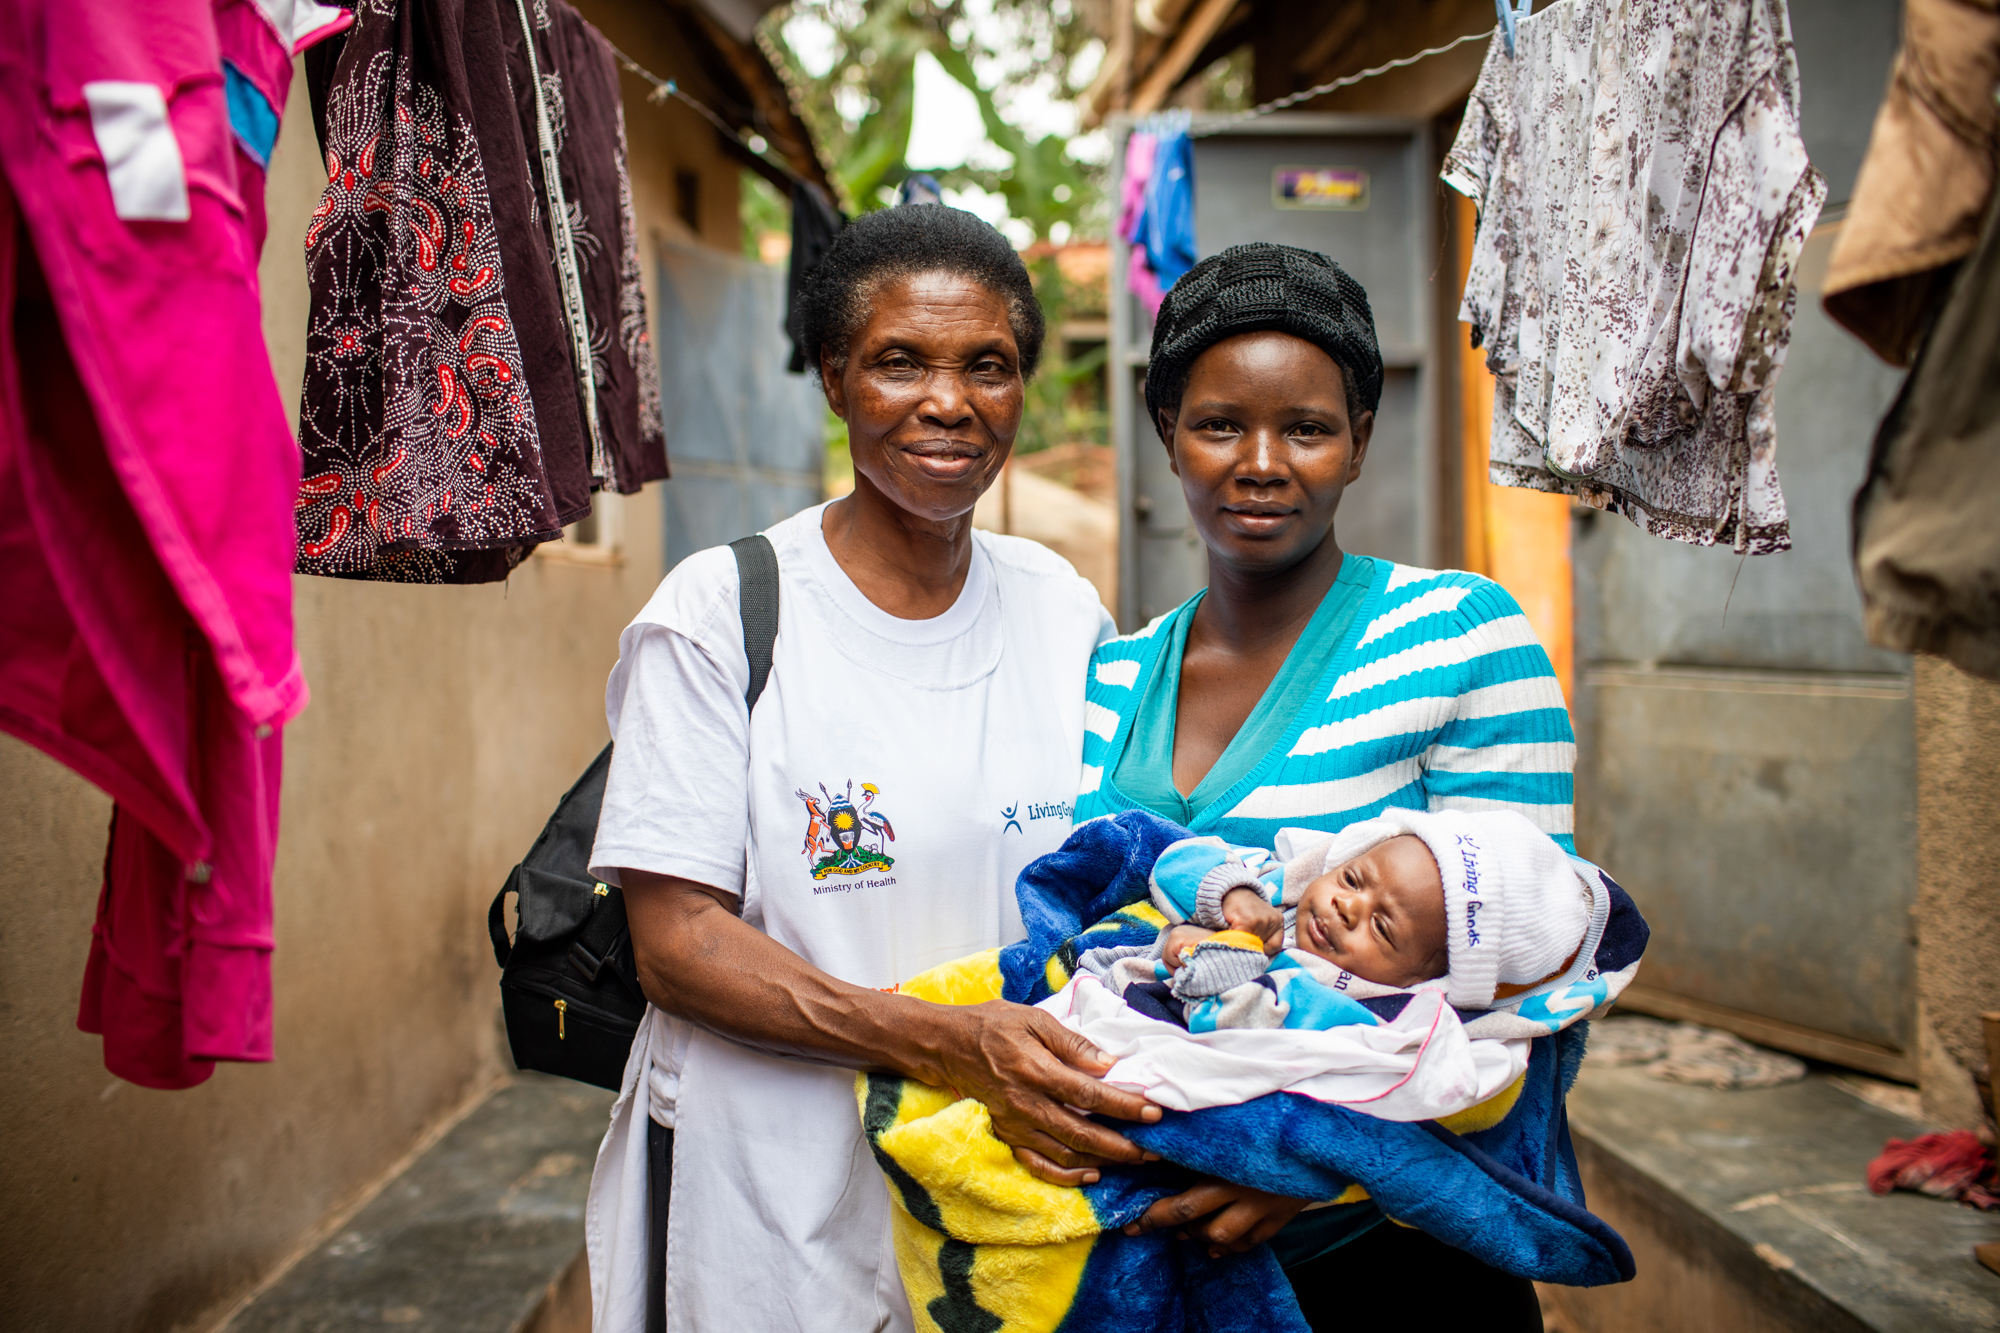 Joy, a Community Health Promoter in Uganda, checks in on a mom and her newborn.